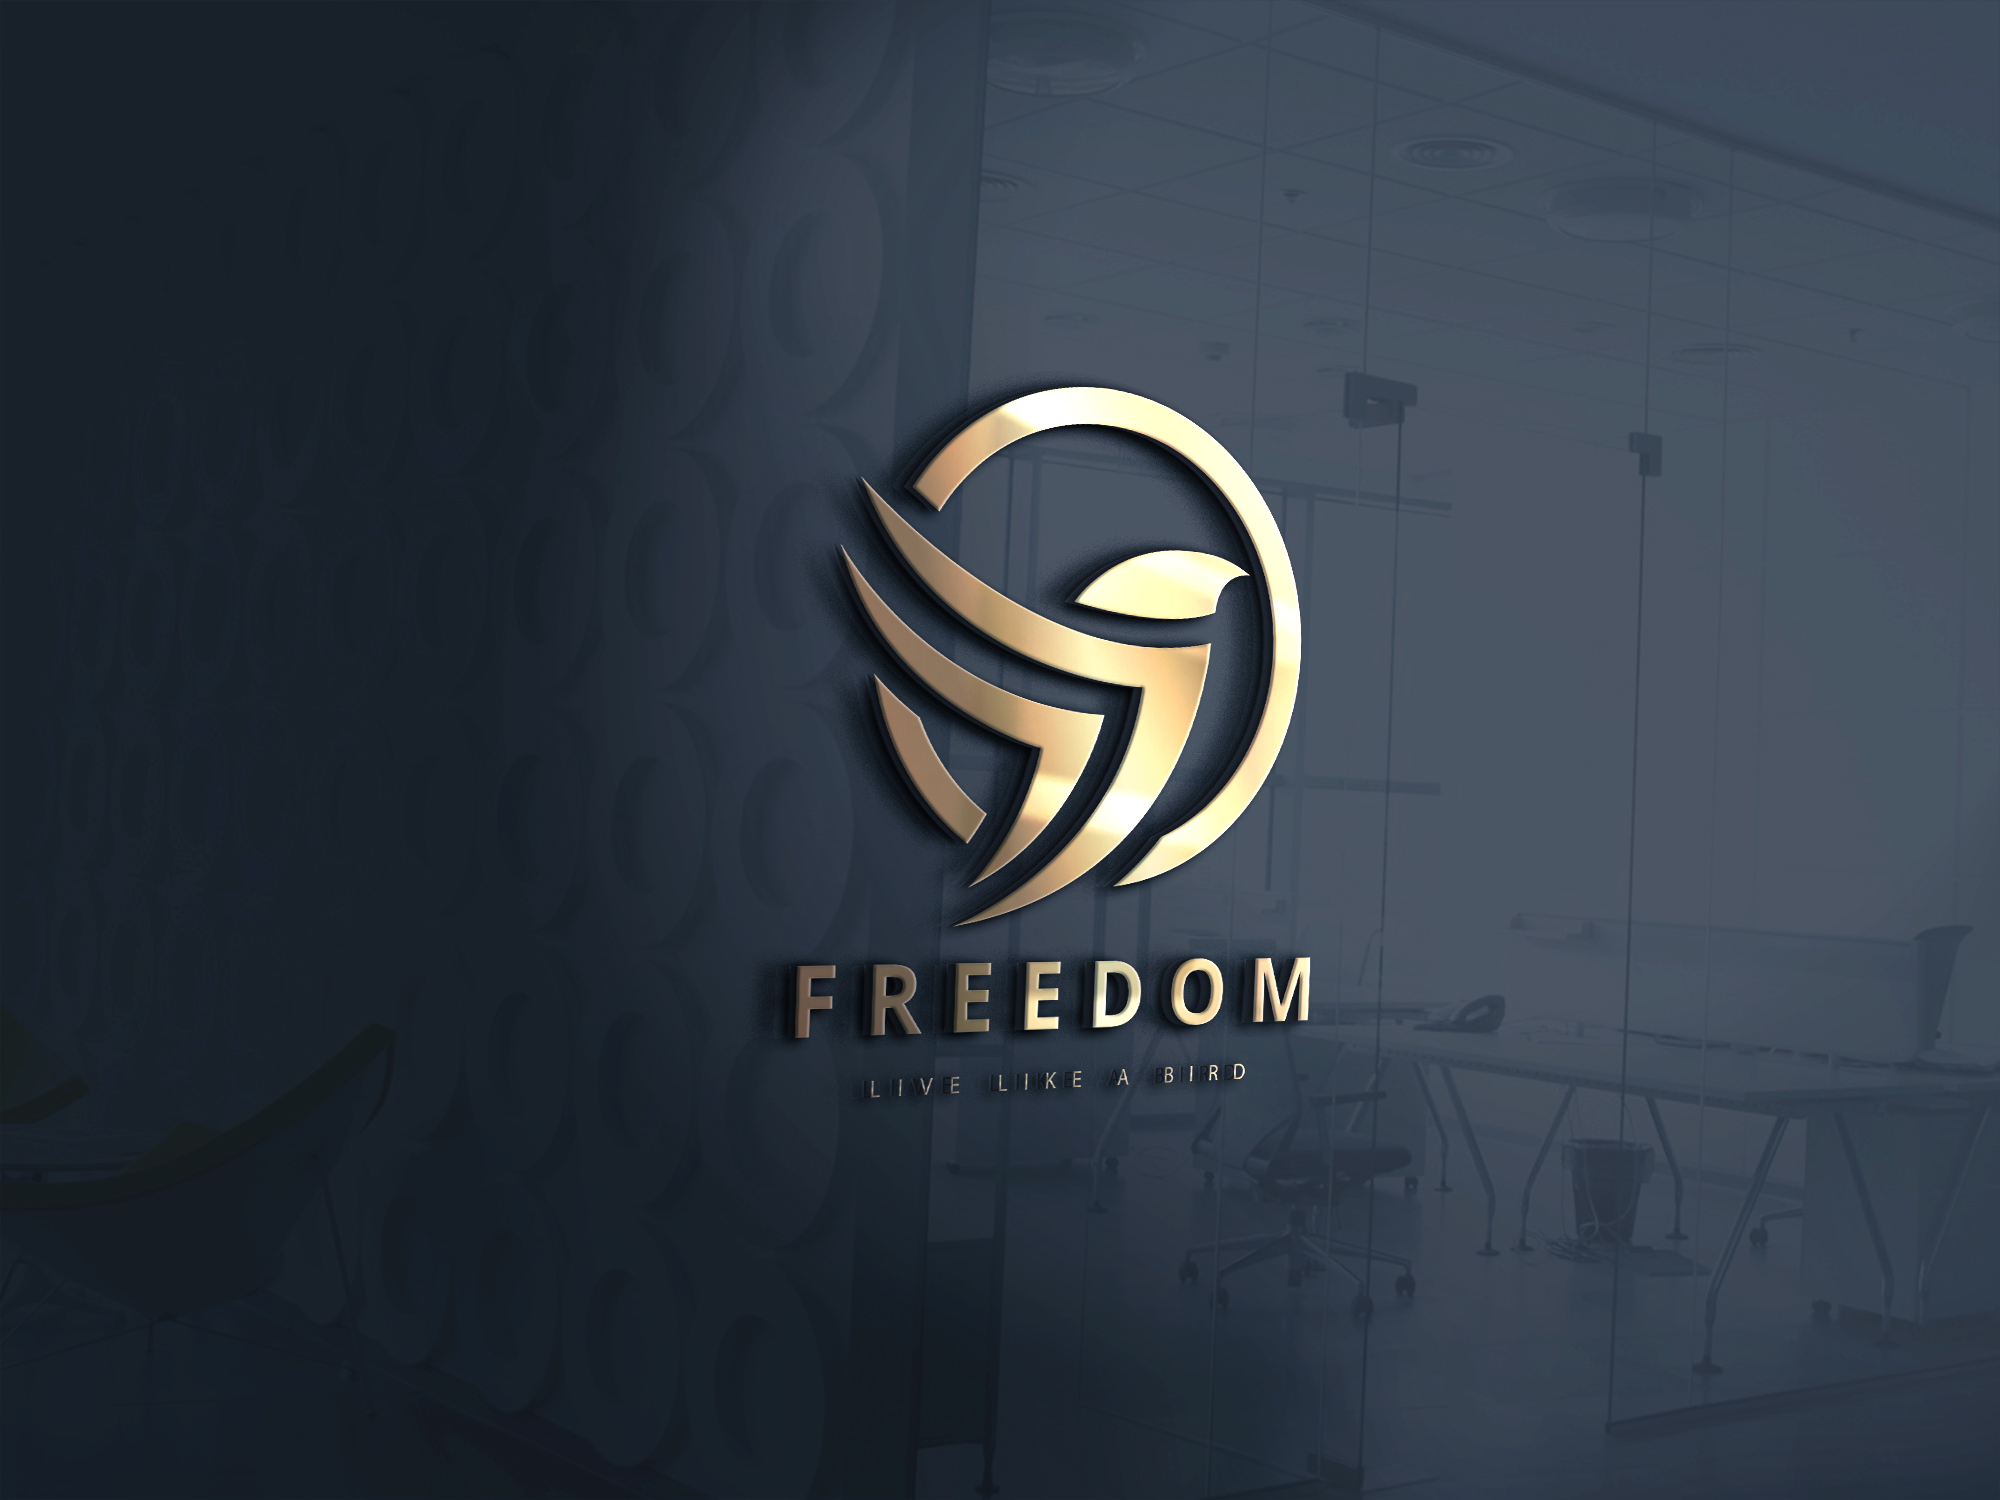 Design Modern And Minimal Logo For Your Business or Website